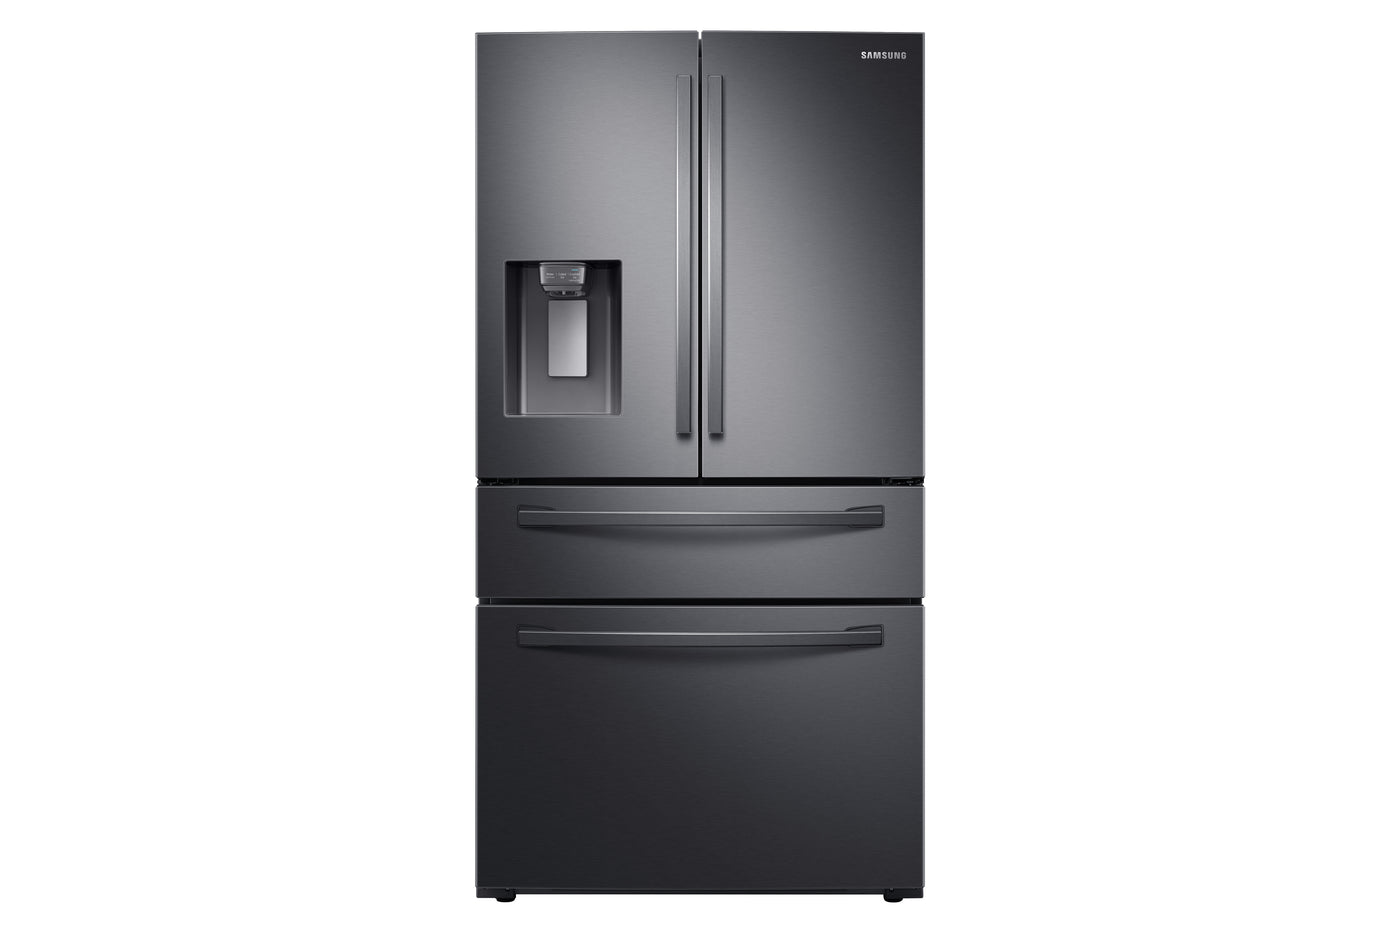 Samsung 28 Cu  Ft  4-Door French-Door Refrigerator with Twin Cooling Plus -  RF28R7201SG/AA